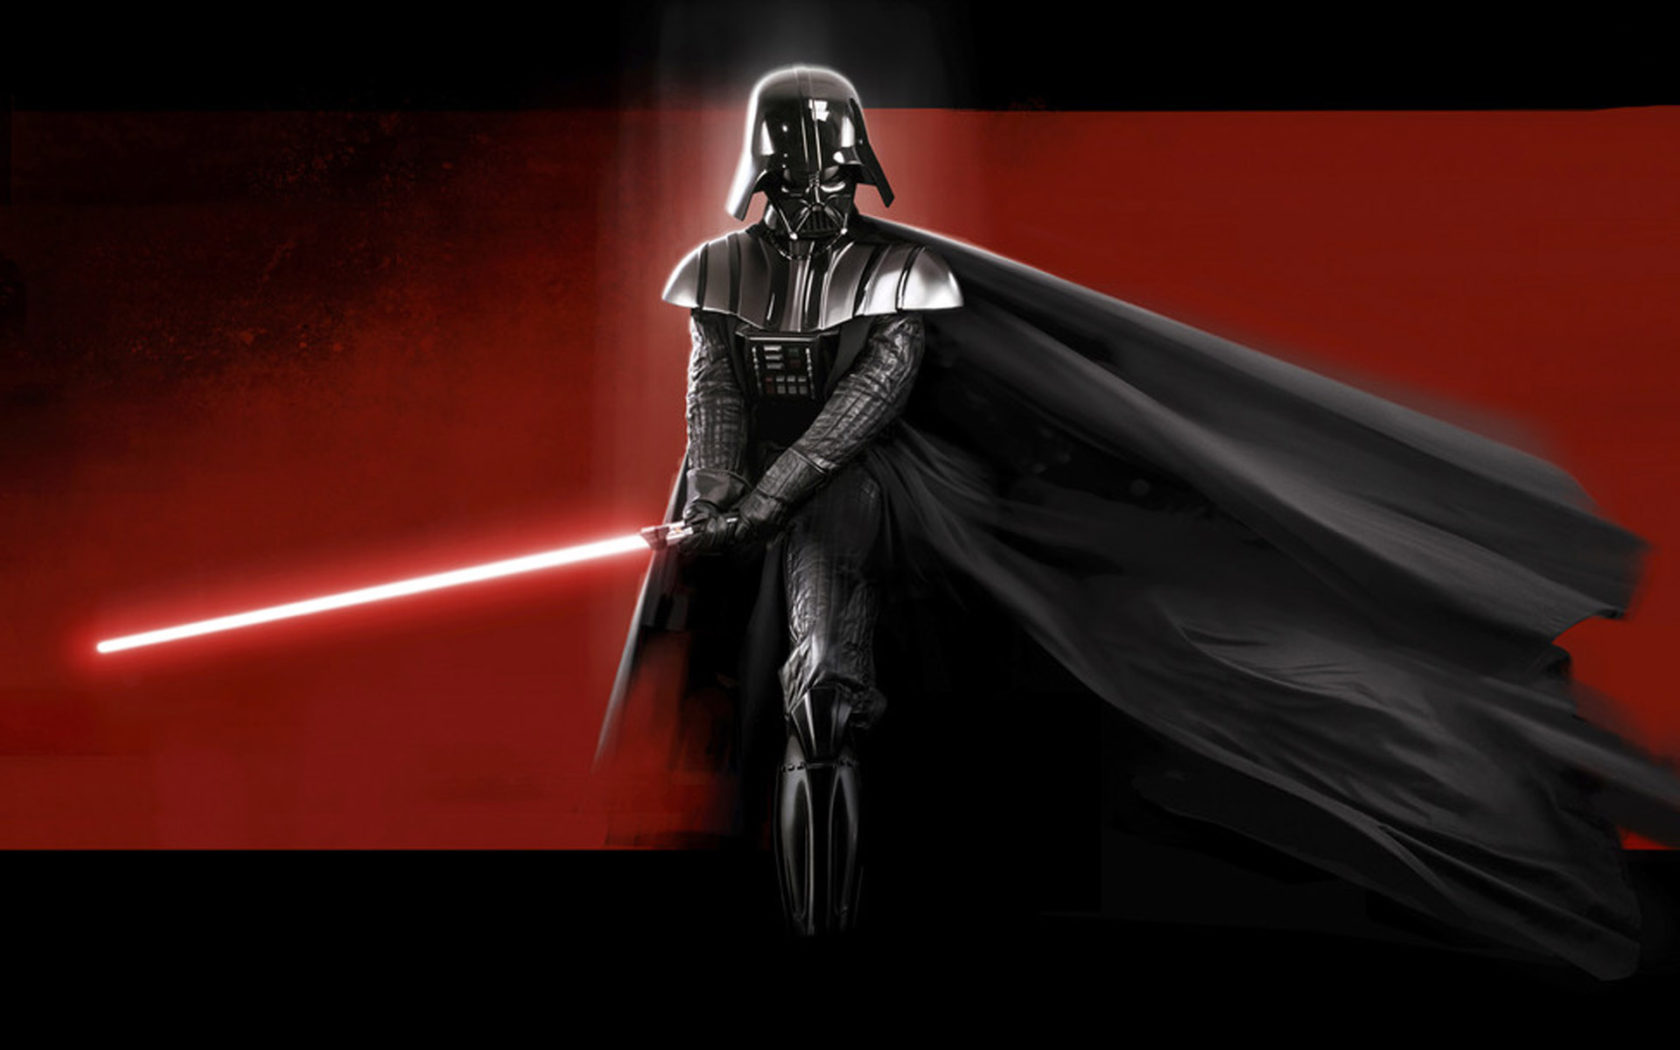 Lightsaber Iphone Wallpaper Star Wars Darth Vader Red Widescreen Hd Wallpapers13 Com